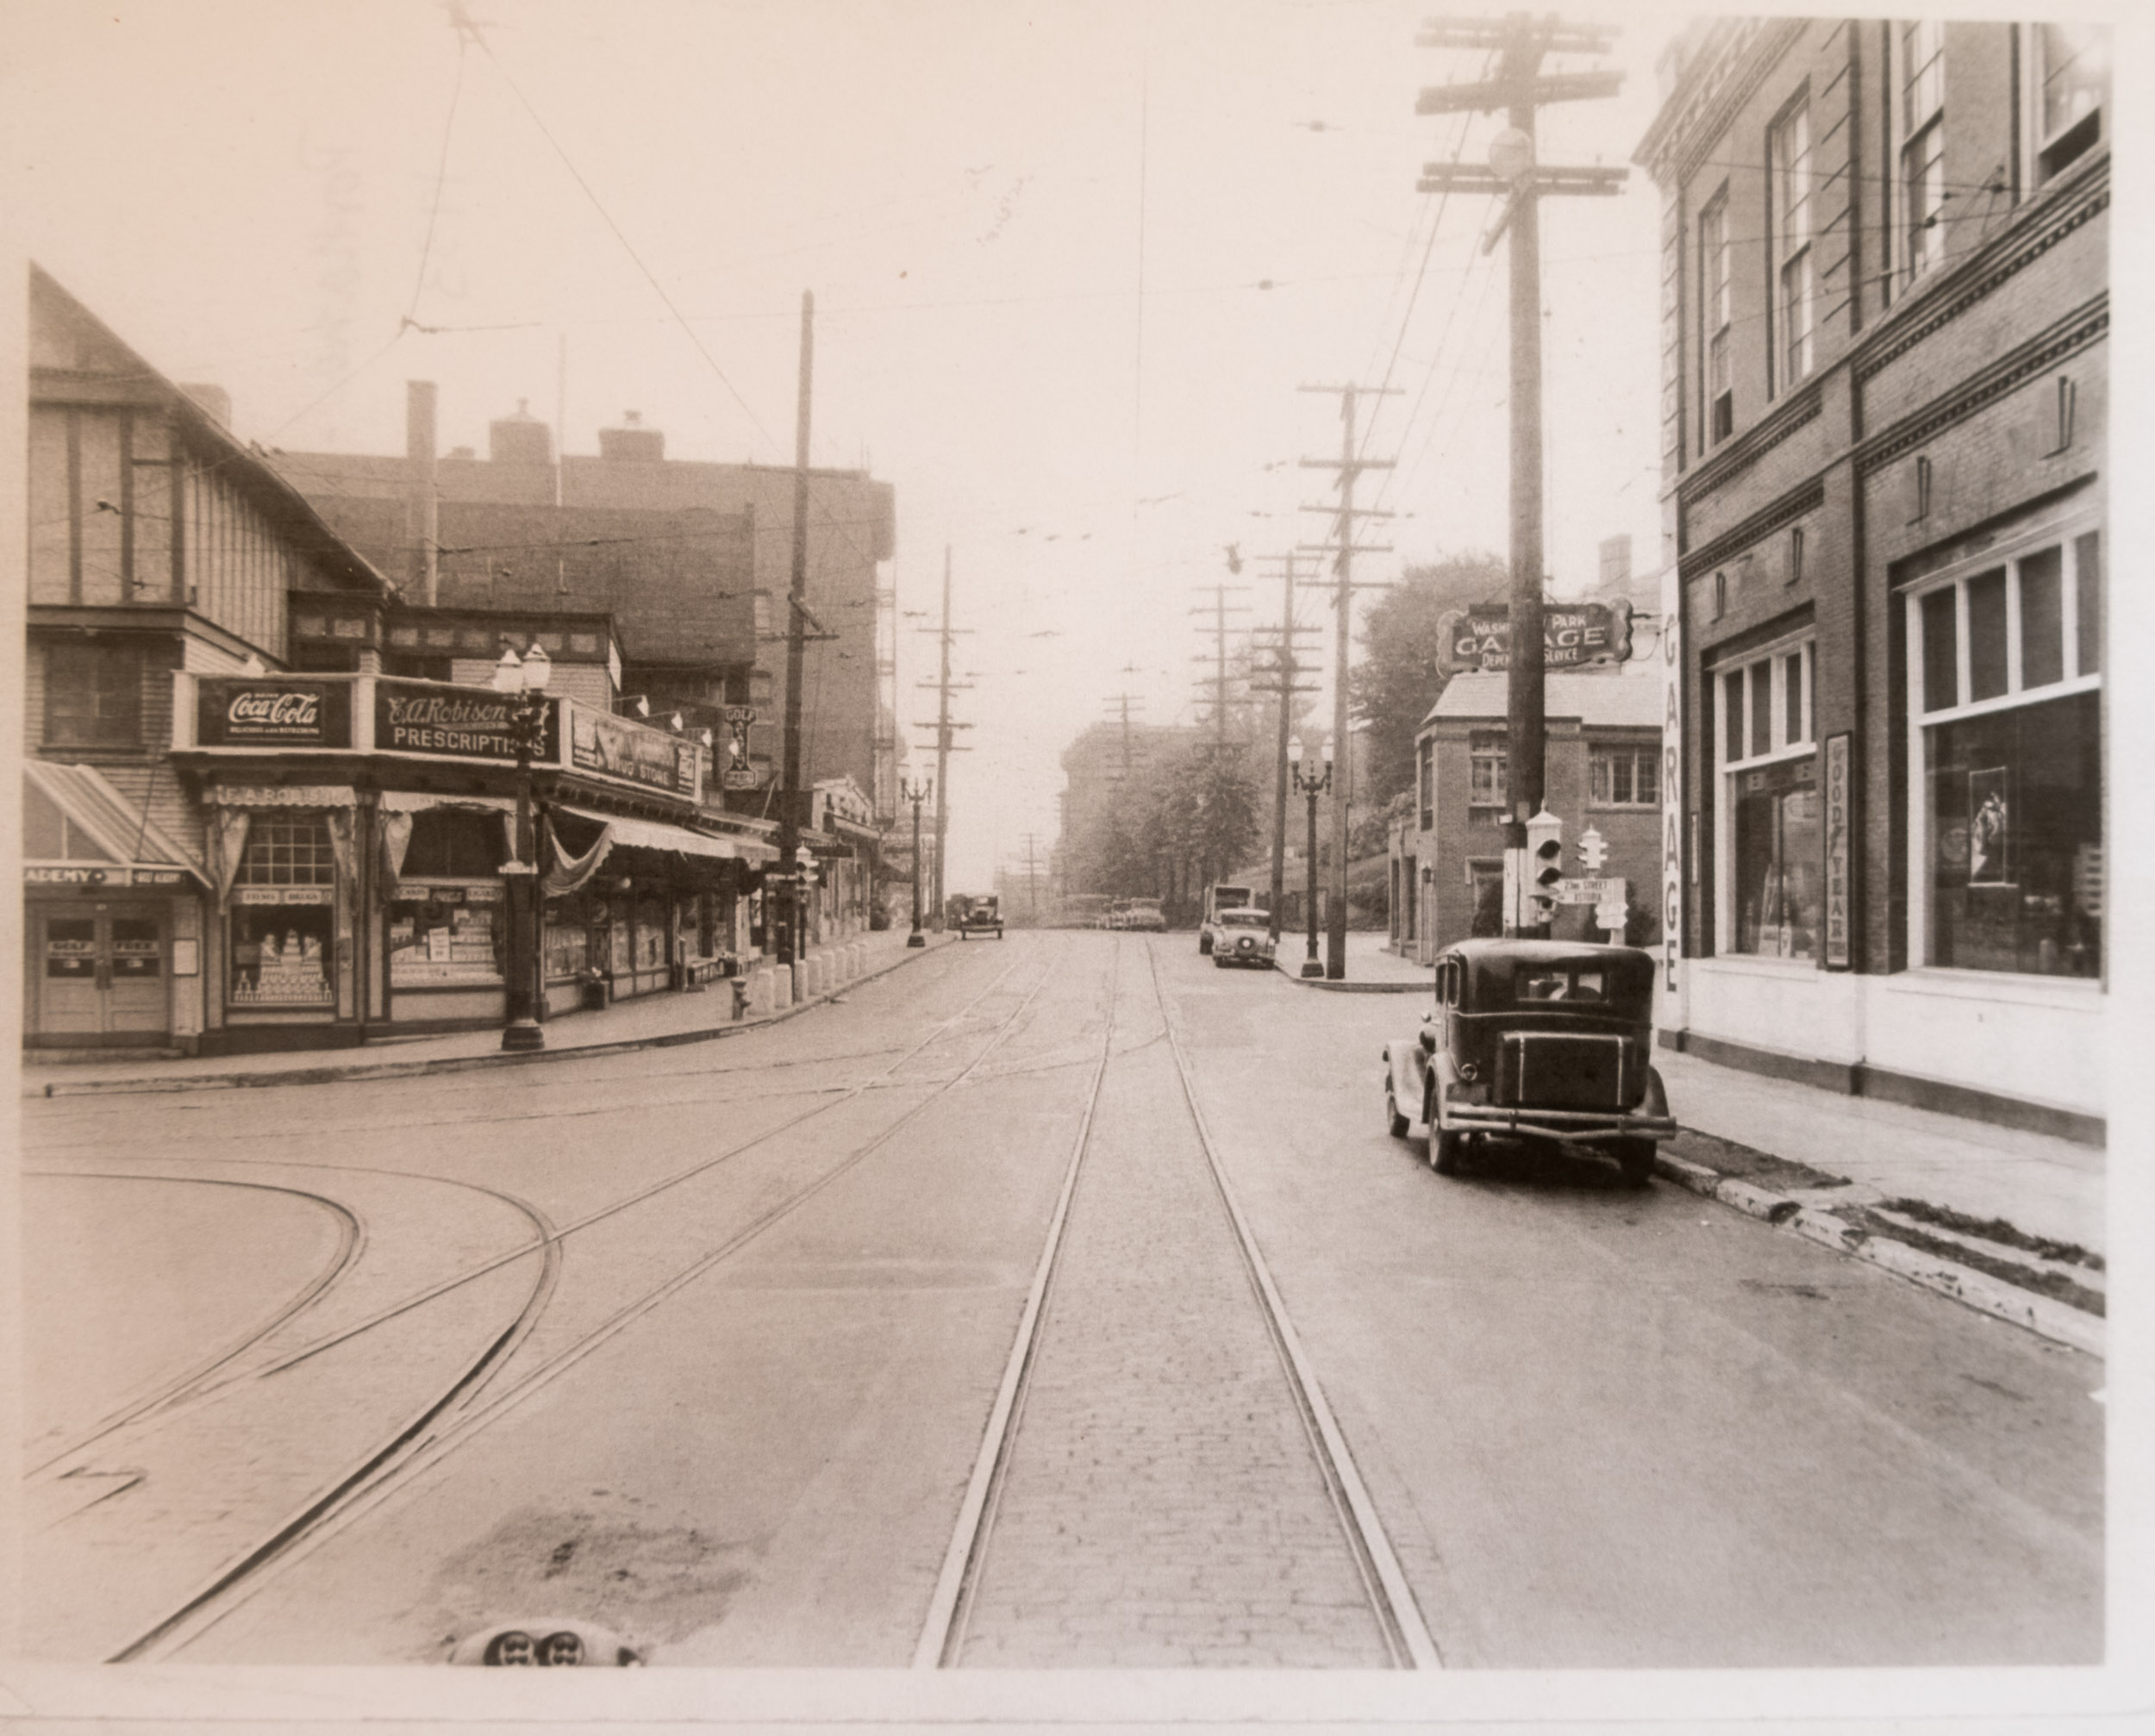 On Burnside looking from the west to the east, 1933